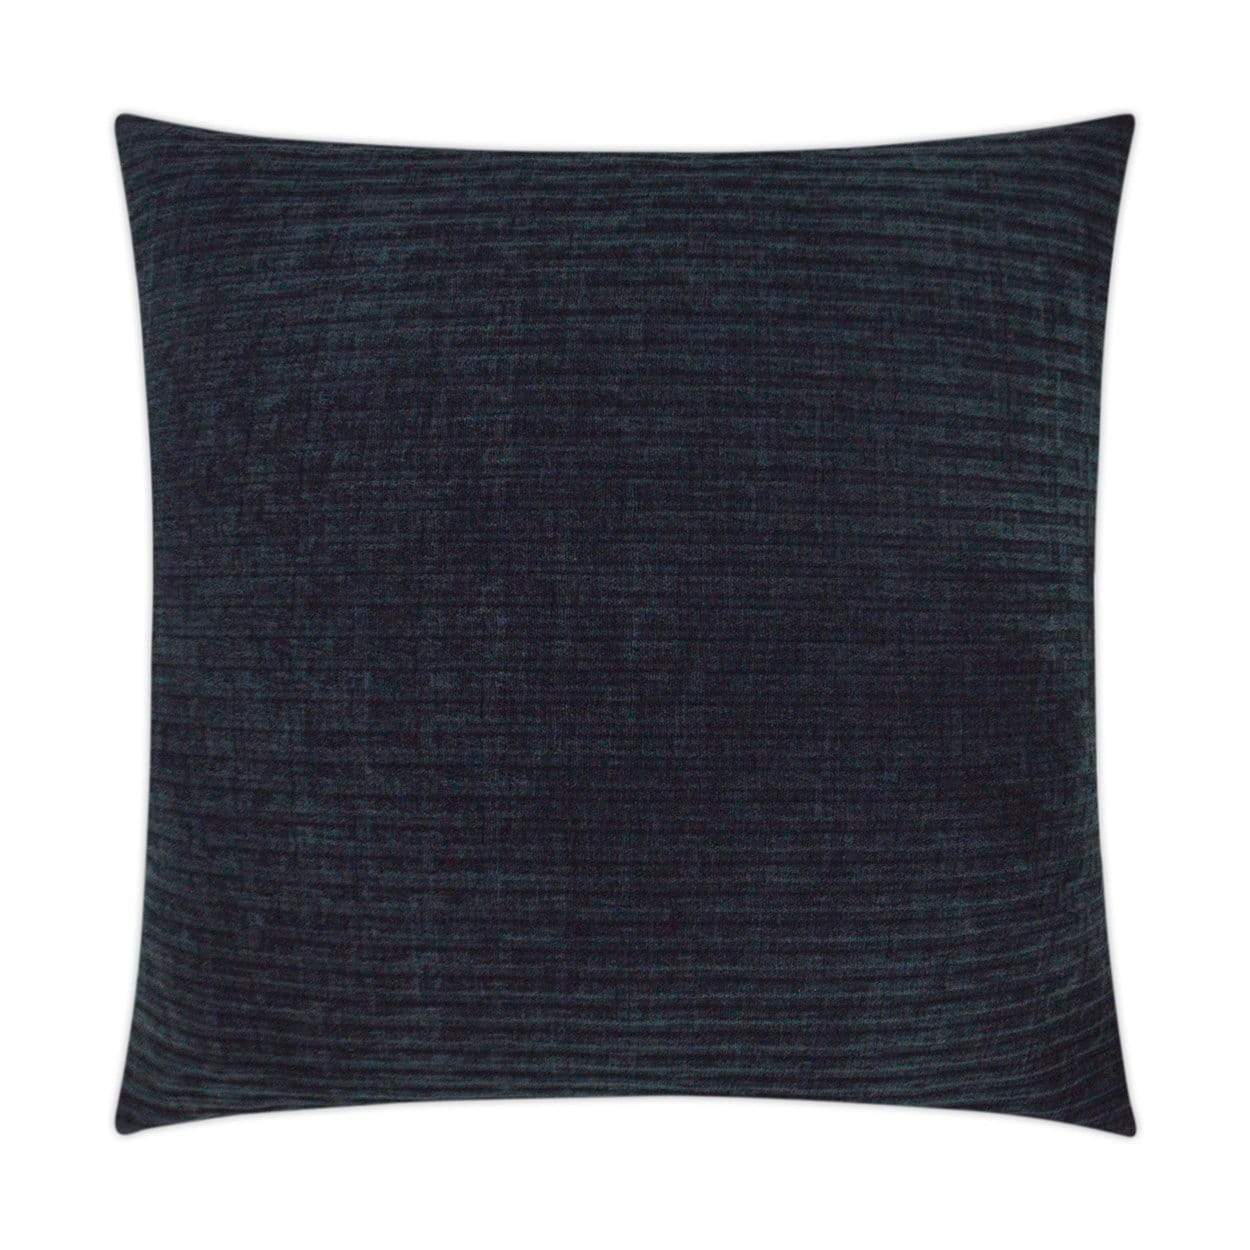 D.V. Kap D.V. Kap Lift Pillow - Available in 4 Colors Black 3211-B